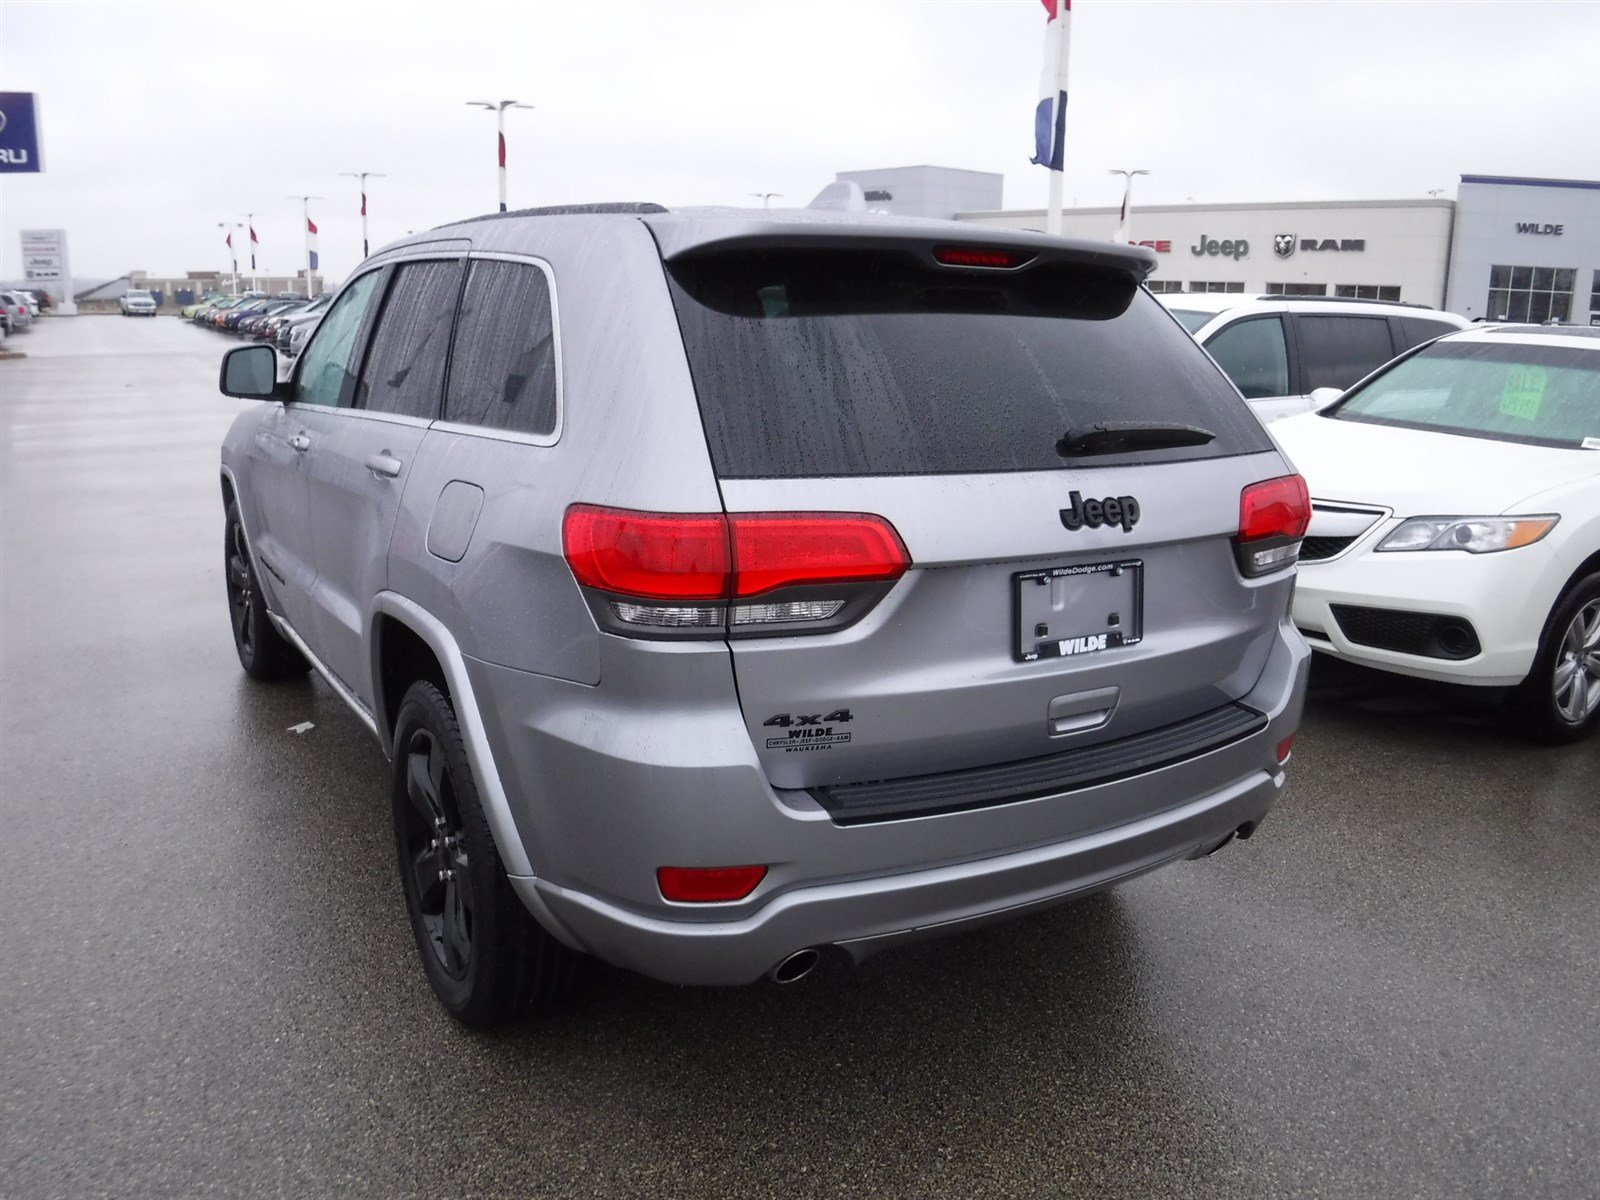 owned inventory utility grand sport jeep altitude in cherokee pre